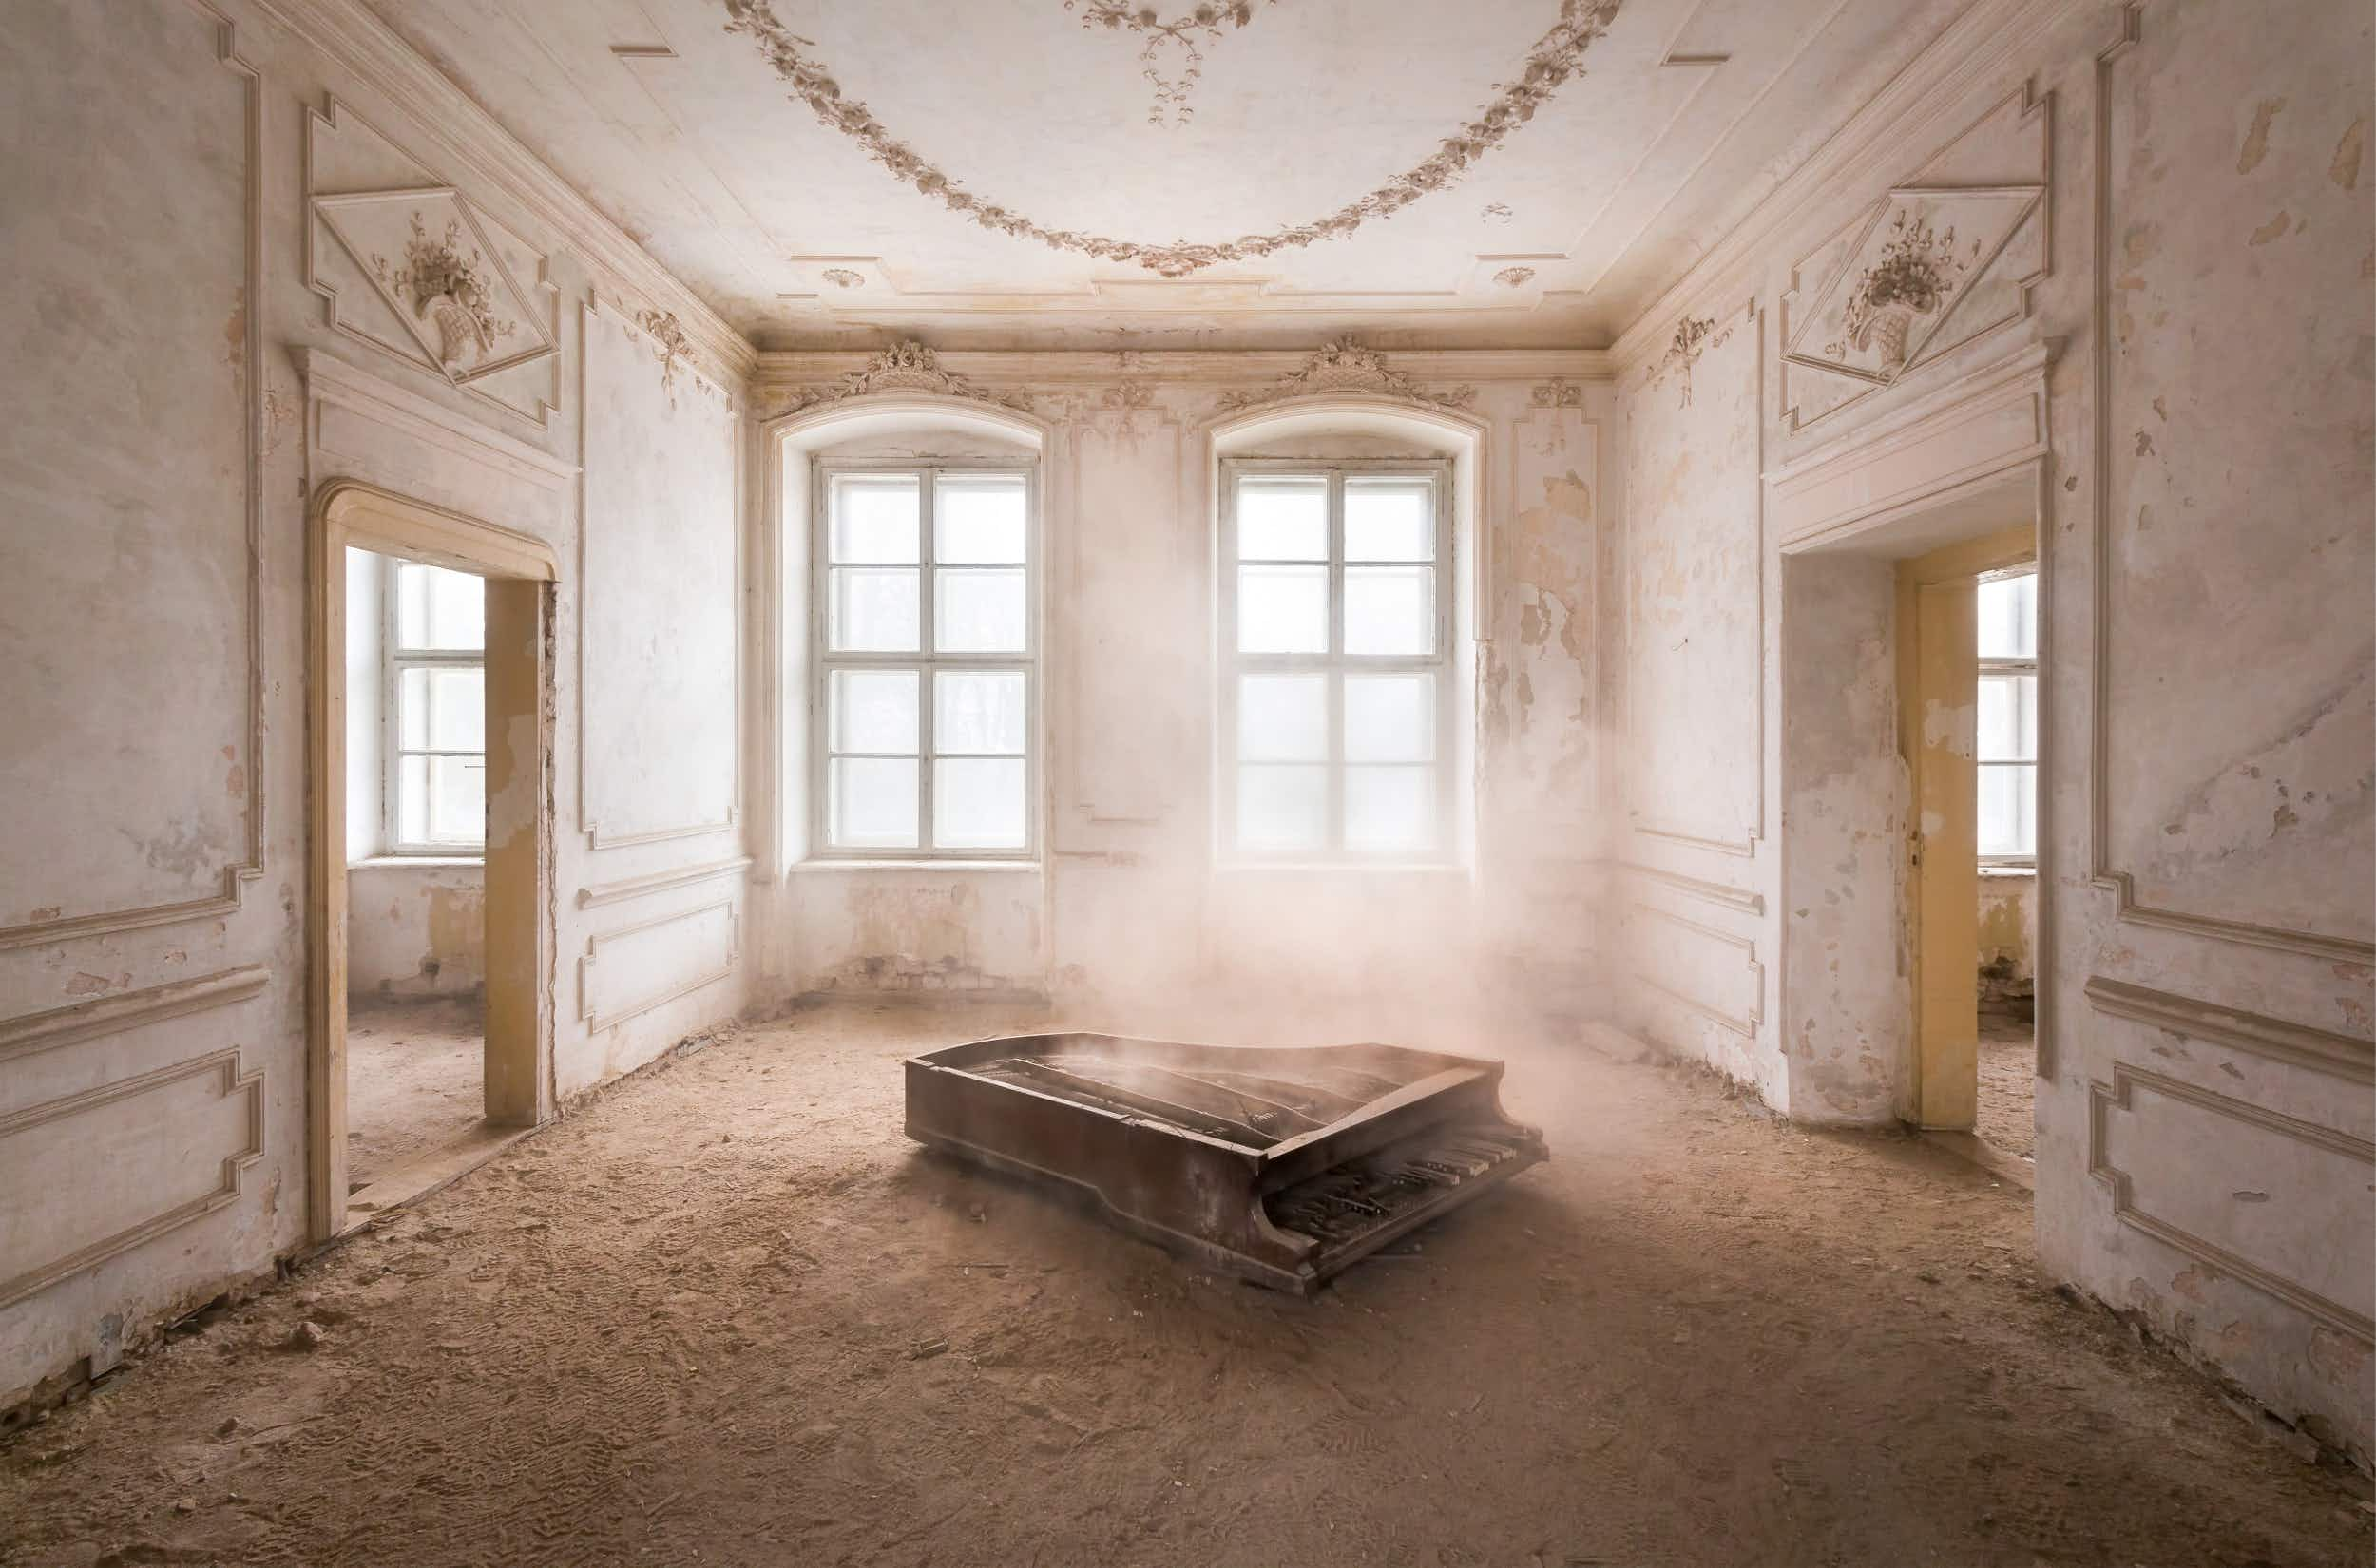 One Dutch photographer is on a quest to capture Europe's abandoned buildings